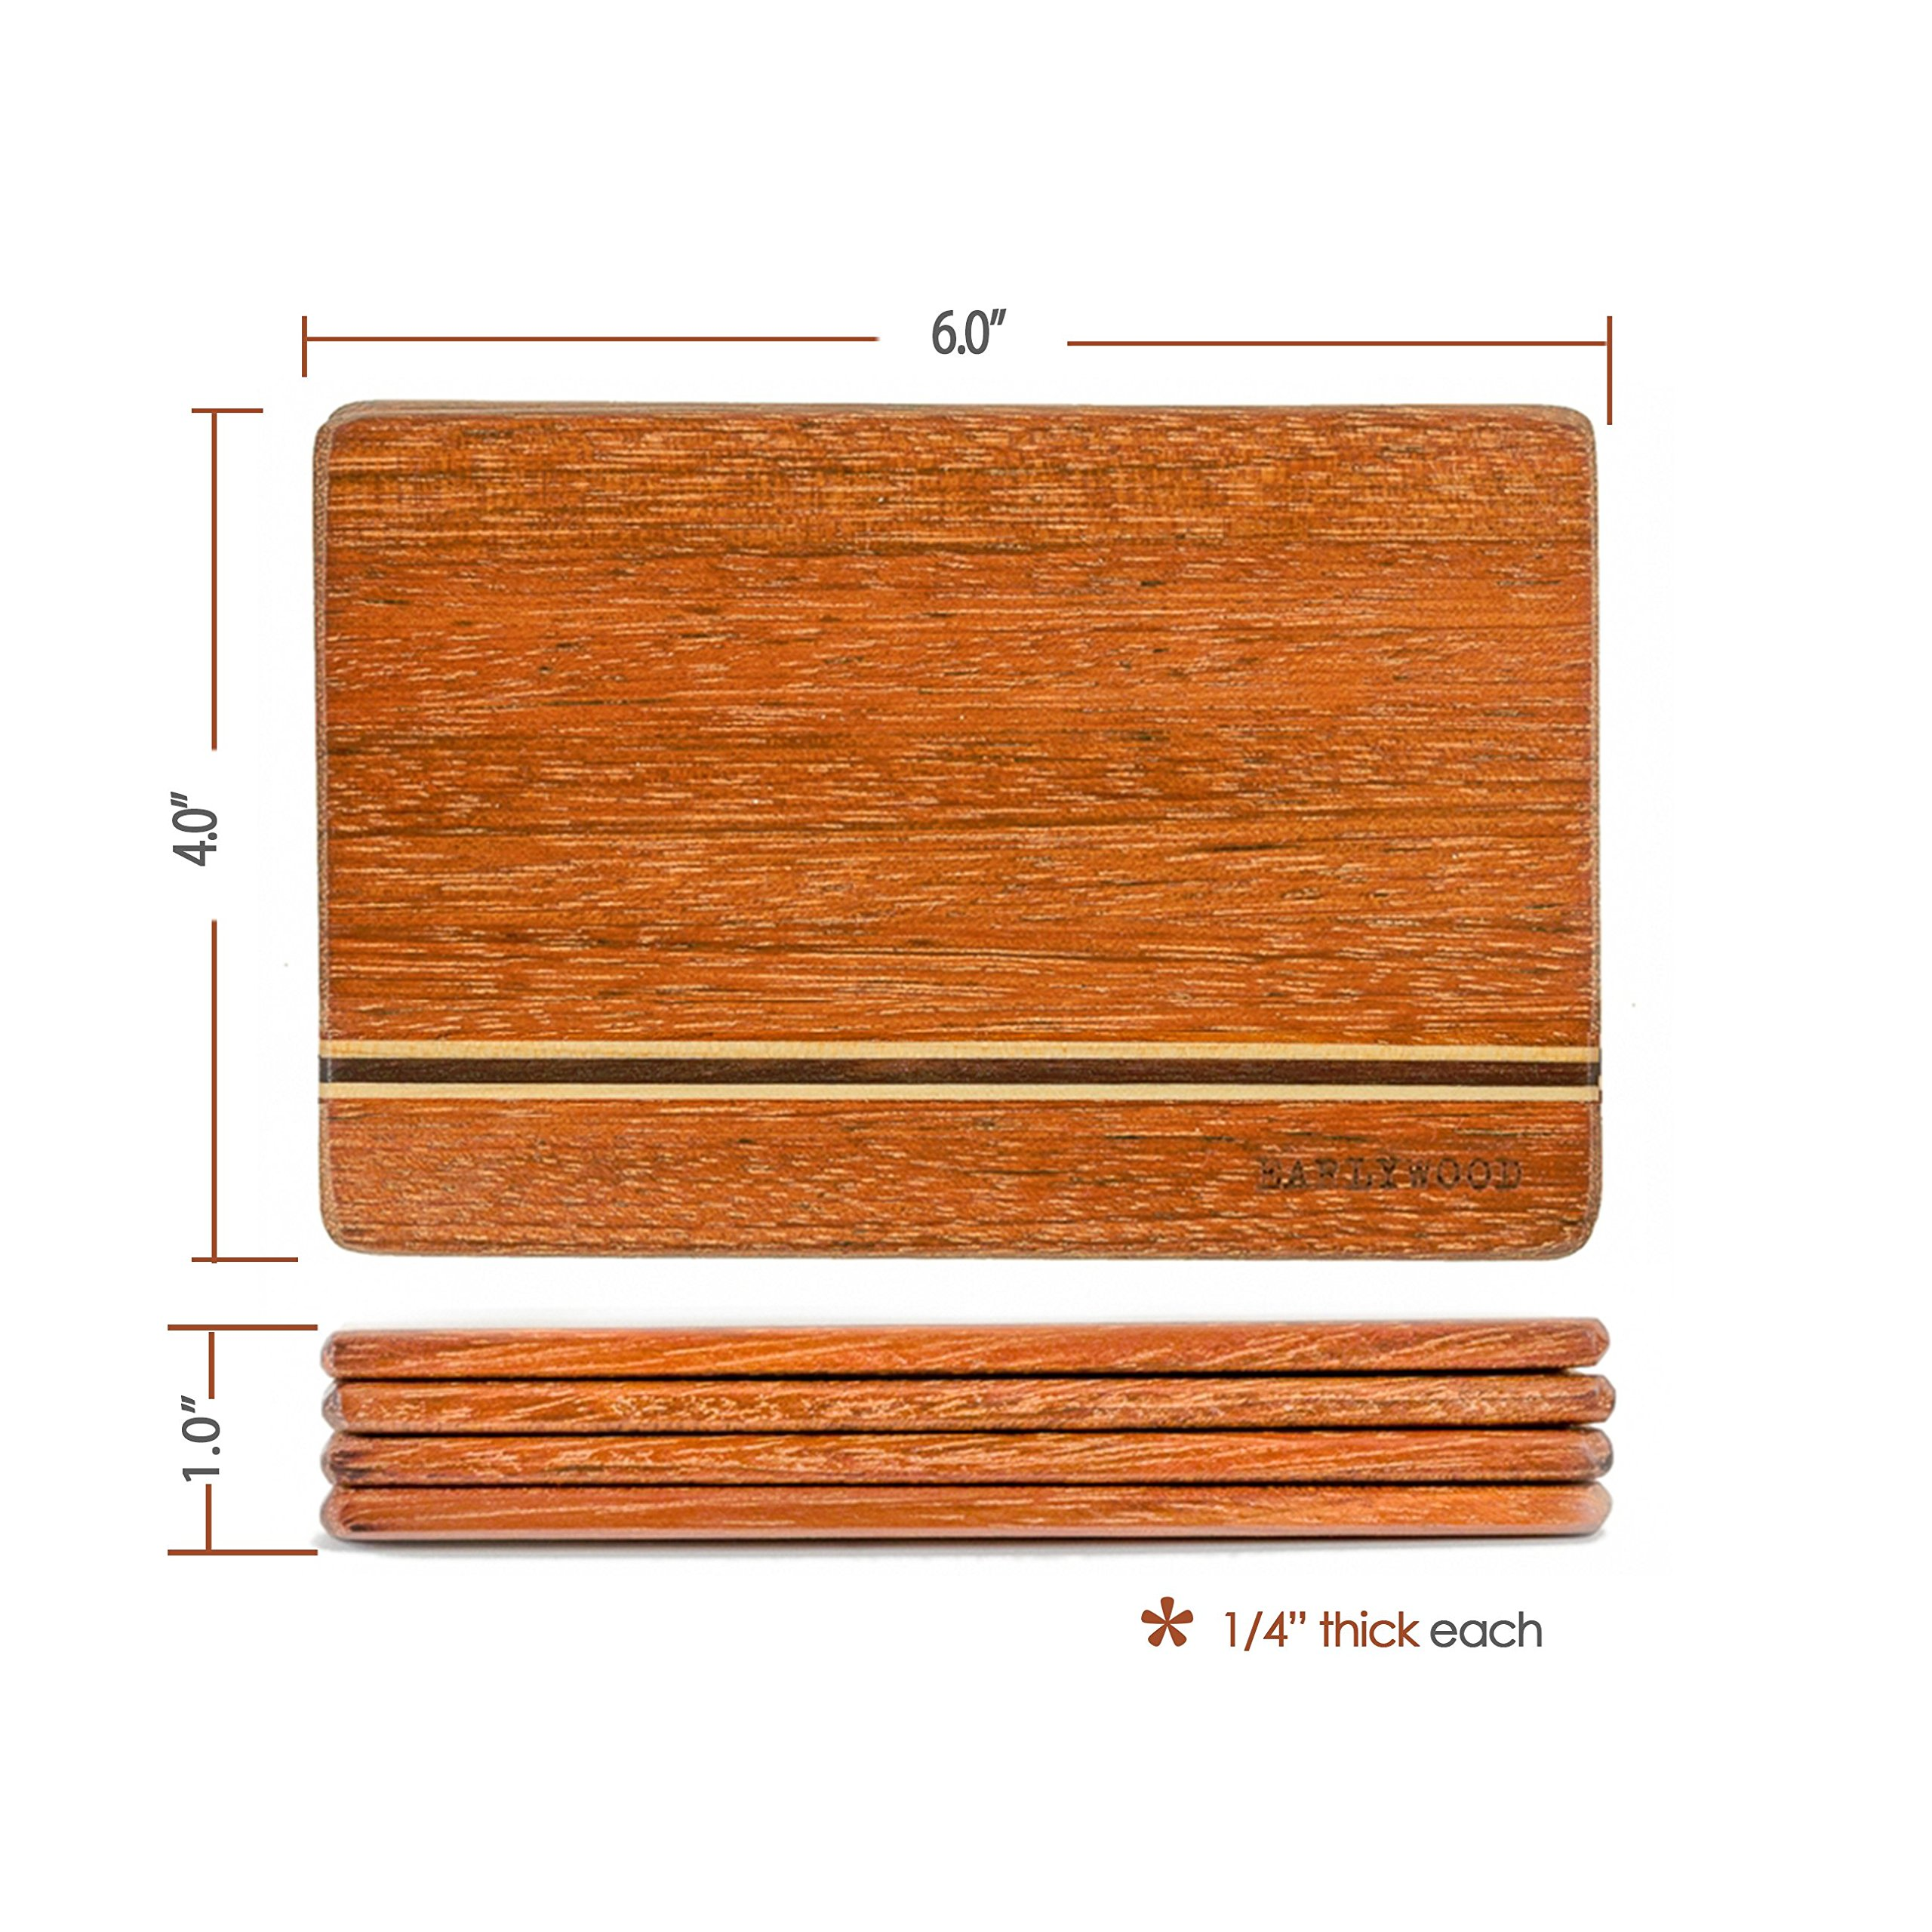 Small Wood Cutting Board Set. Set of 4 mini wooden cutting boards. Light and thin wood serving boards for wood cheese boards, spoon rests, trivets, wood serving set or bar cutting board set. The best! by Earlywood (Image #4)